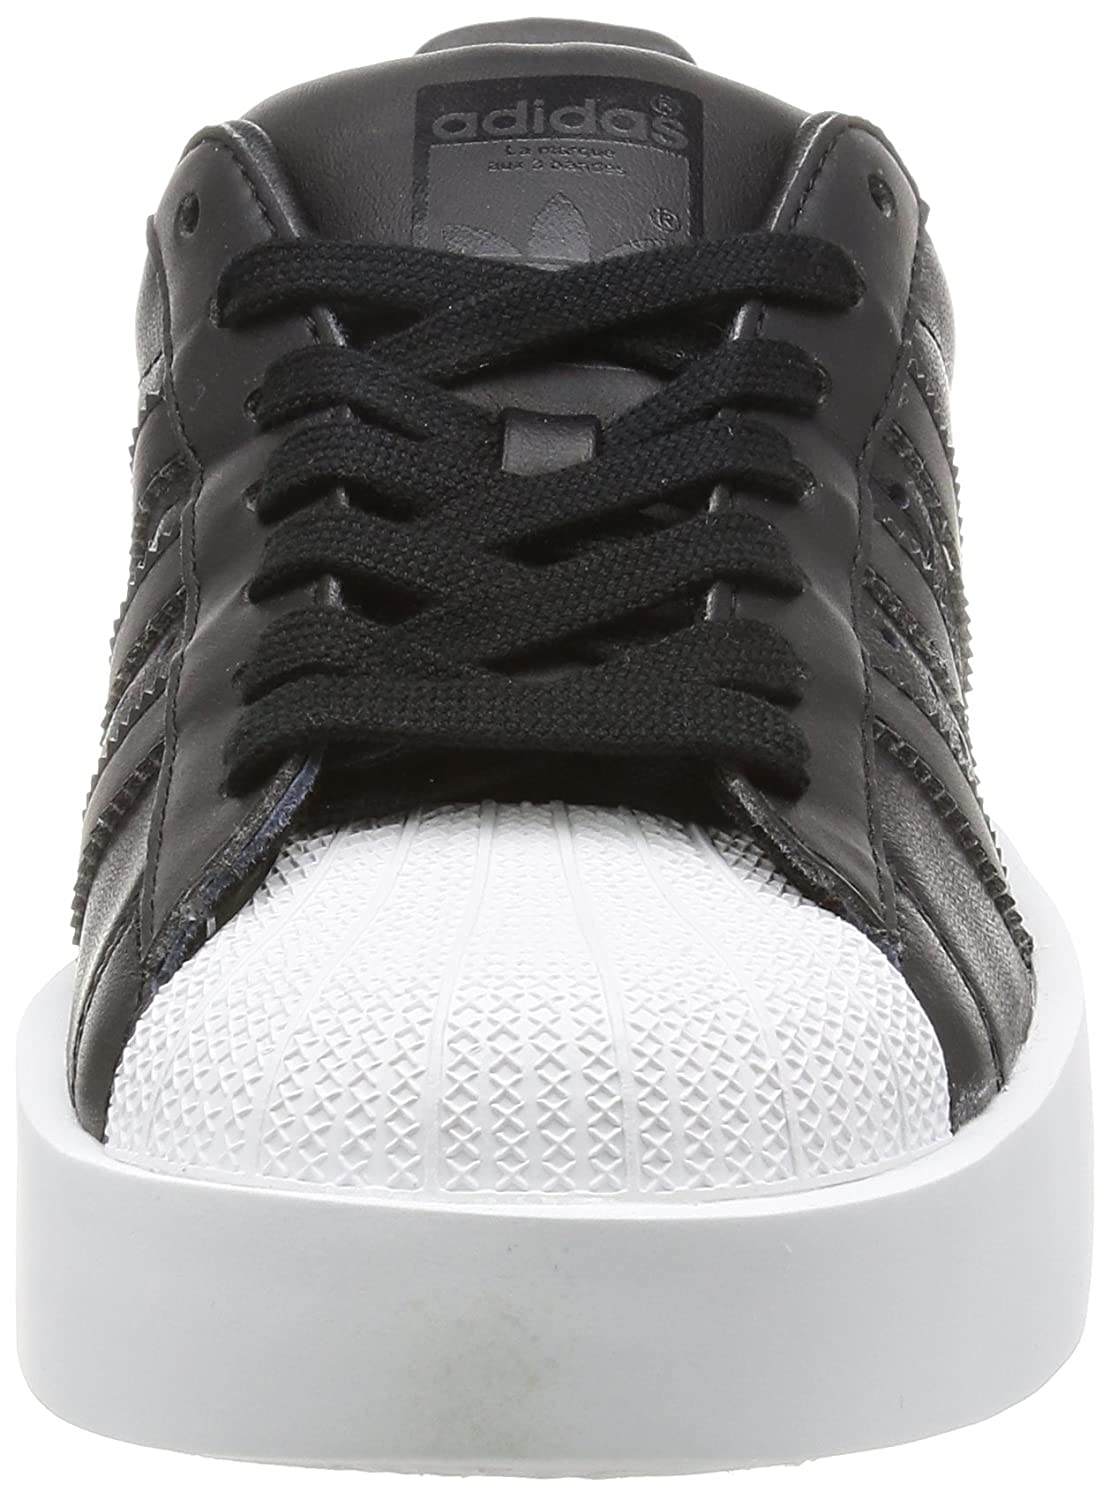 sports shoes 31d11 31a6e adidas Womens Superstar Bold W Low-Top Sneakers adidas Originals  Amazon.co.uk Sports  Outdoors